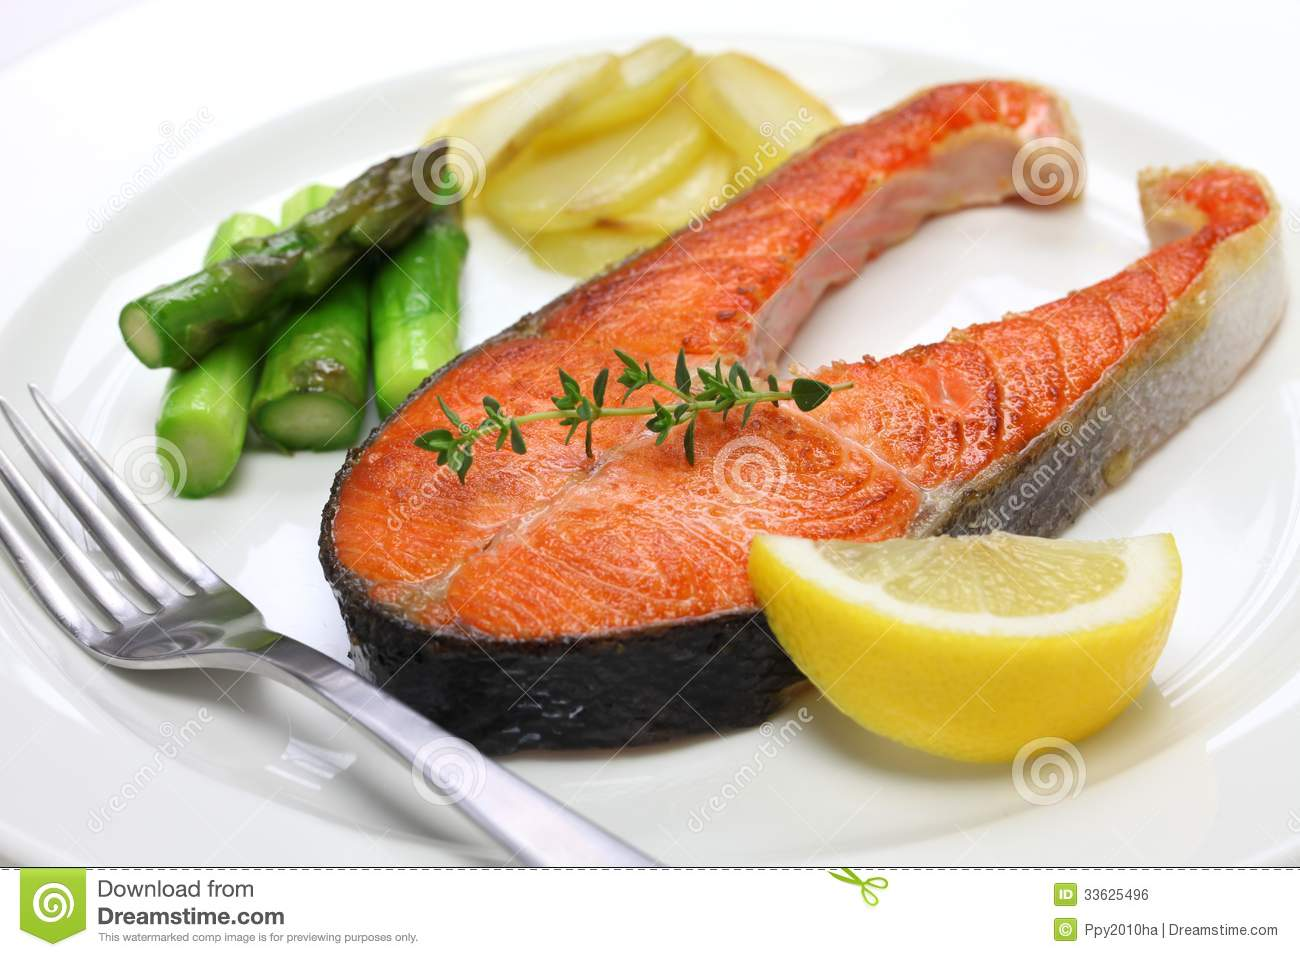 Cooked Salmon Steak Royalty Free Stock Image - Image: 33625496